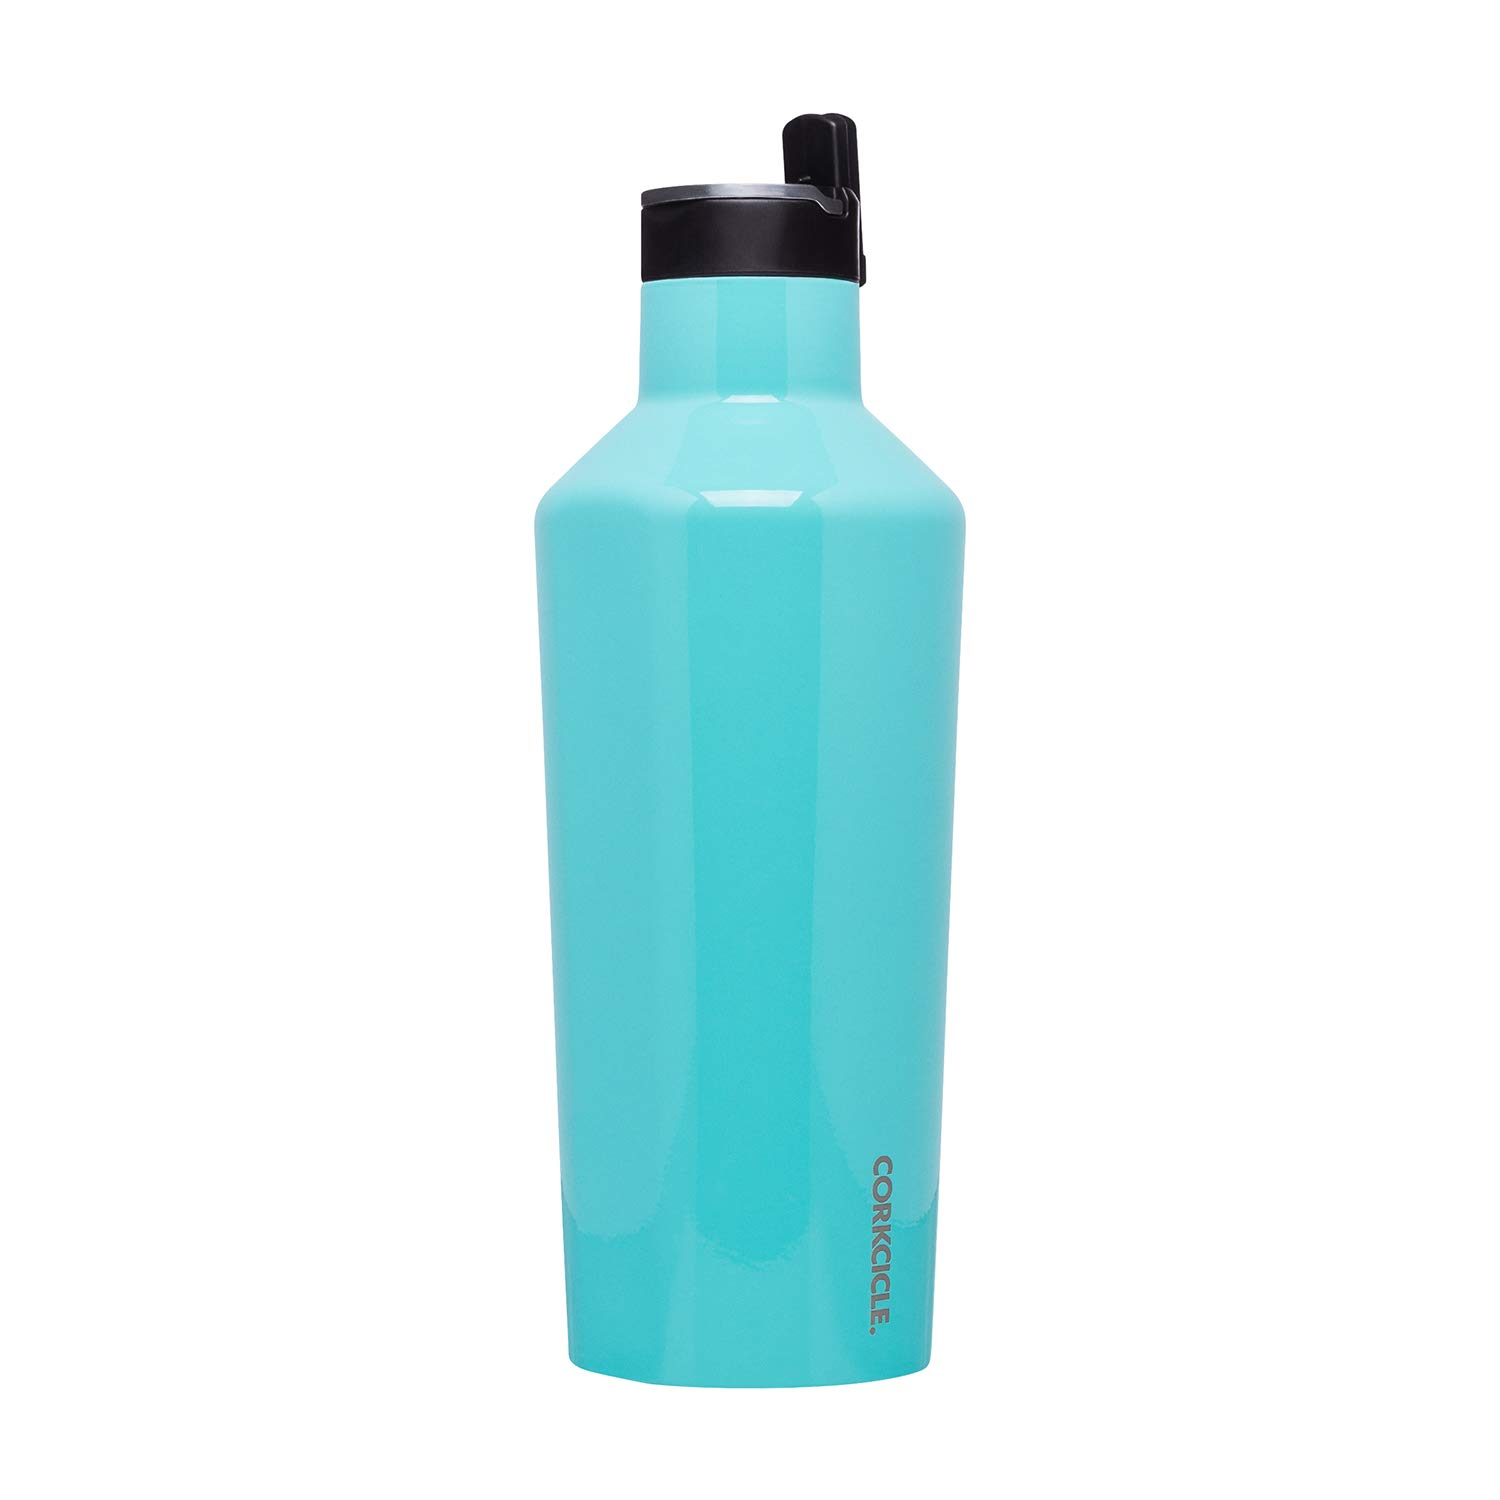 Corkcicle Canteen Sport Collection - Water Bottle & Thermos - Triple Insulated Shatterproof Stainless Steel, 40oz, Gloss Turquoise by Corkcicle